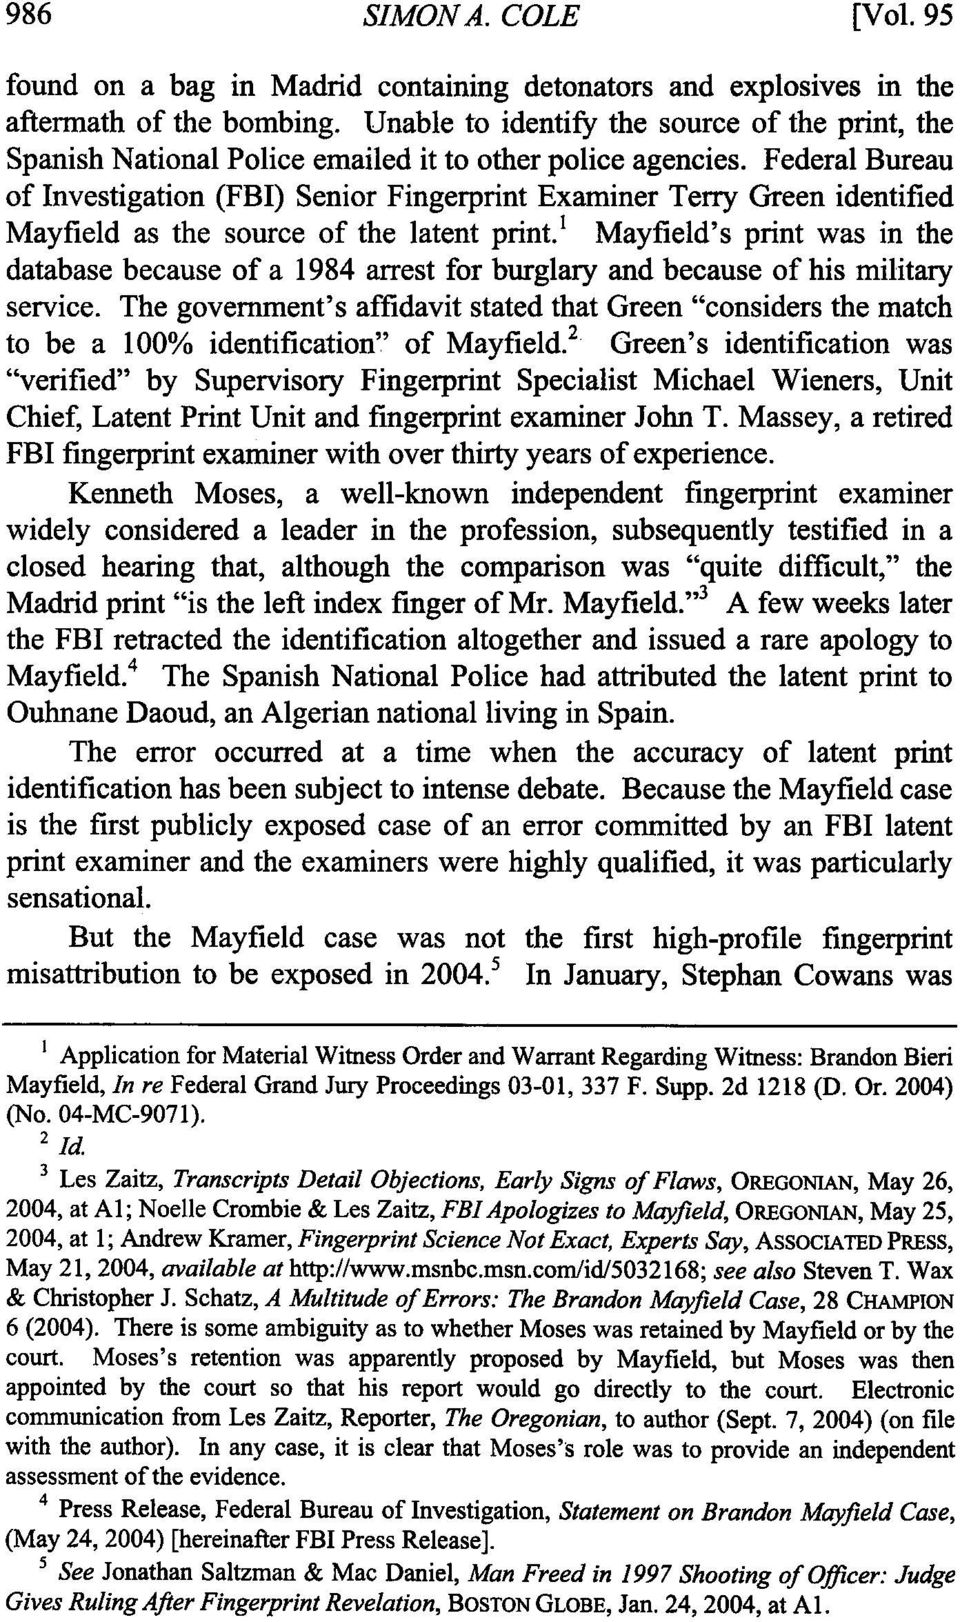 Federal Bureau of Investigation (FBI) Senior Fingerprint Examiner Terry Green identified Mayfield as the source of the latent print.